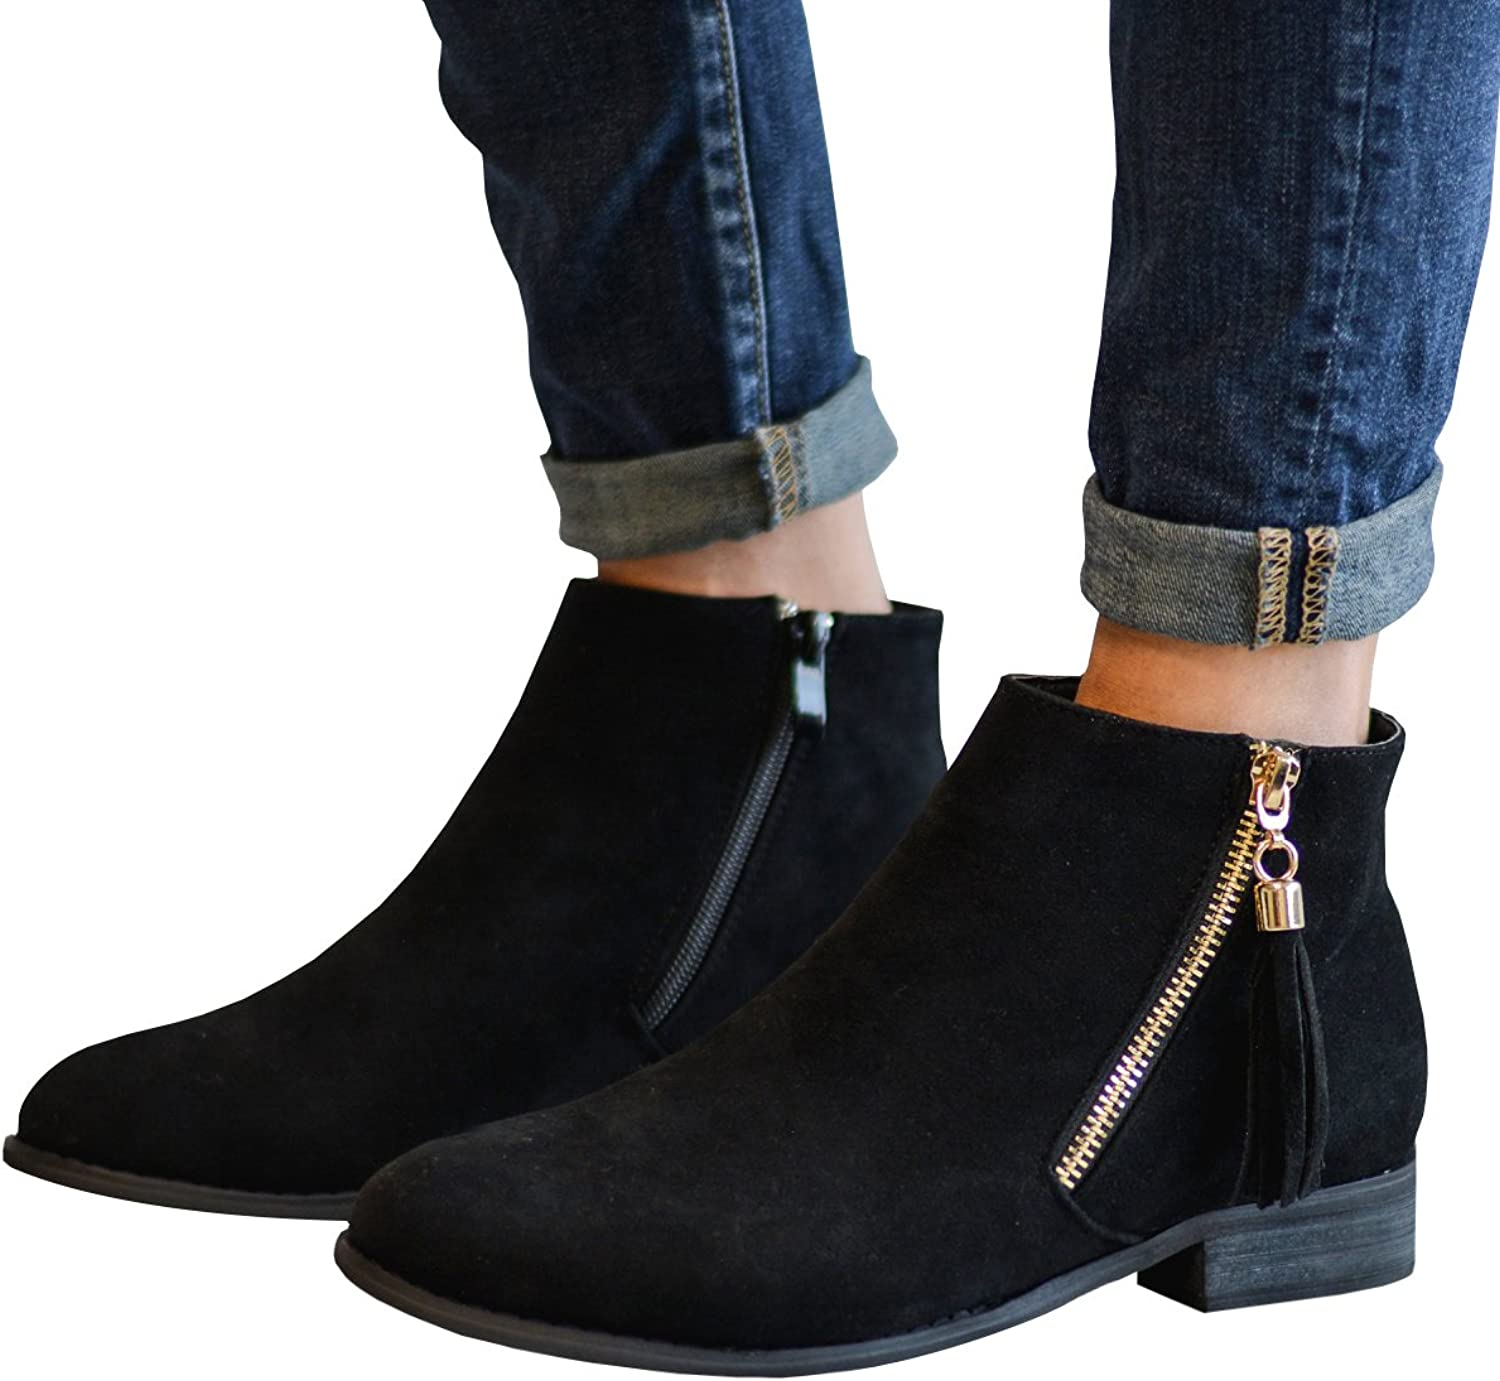 Womens Ankle Booties Chunky Leather Stacked Low Side Zipper Round Toe Boots shoes